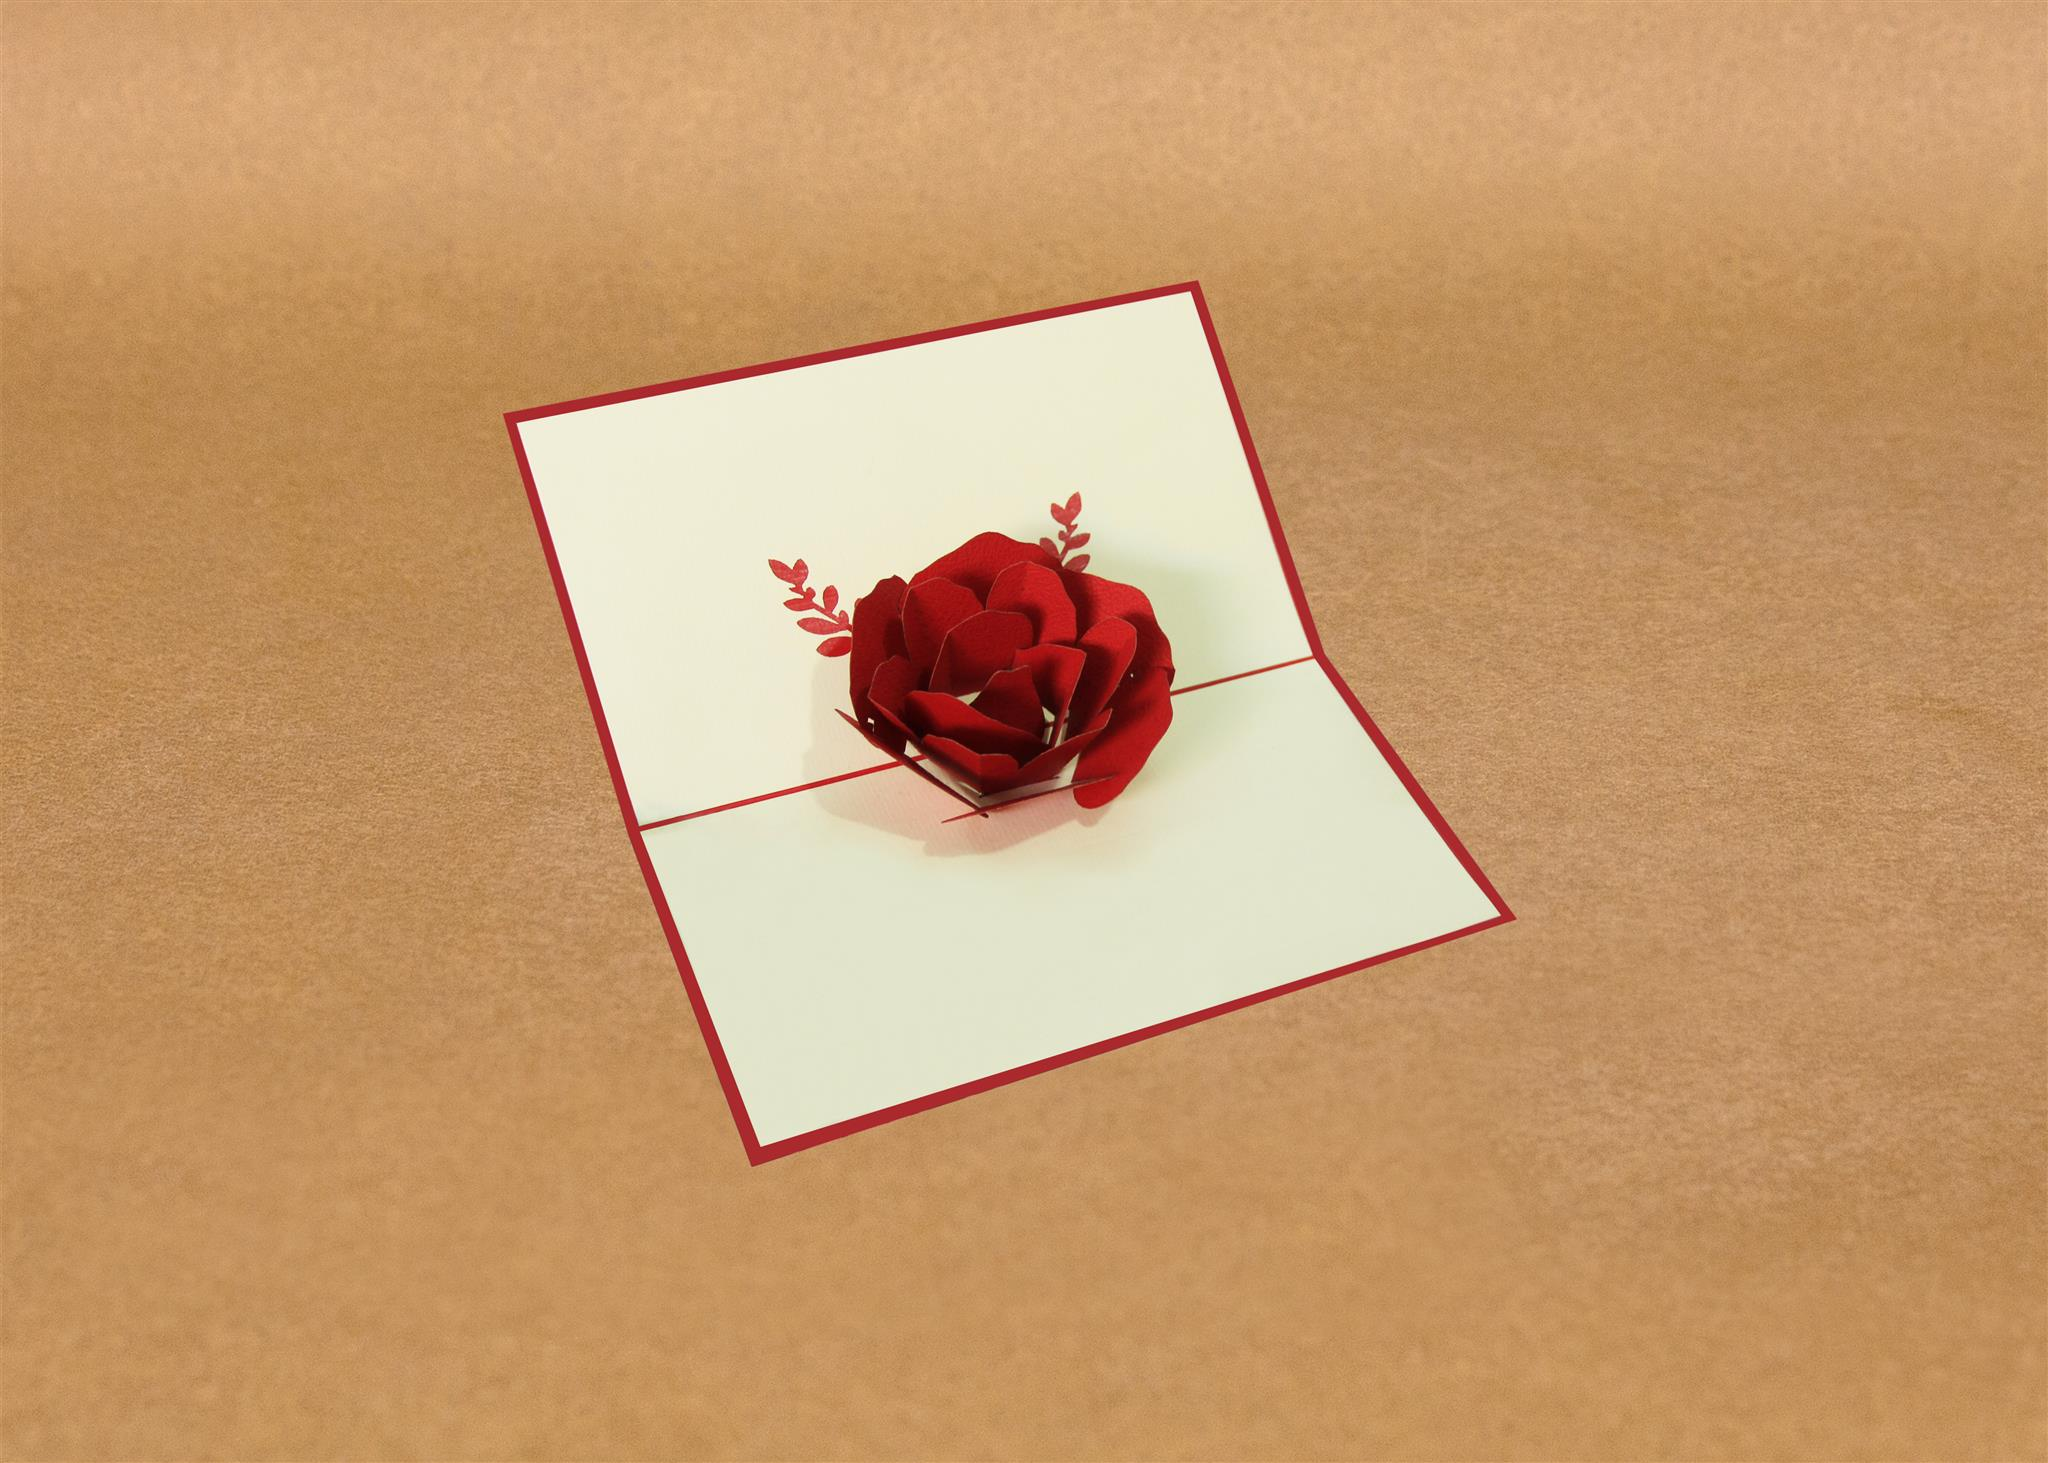 Handmade Pop Up Anniversary Cards Wholesale Pop Up Cards